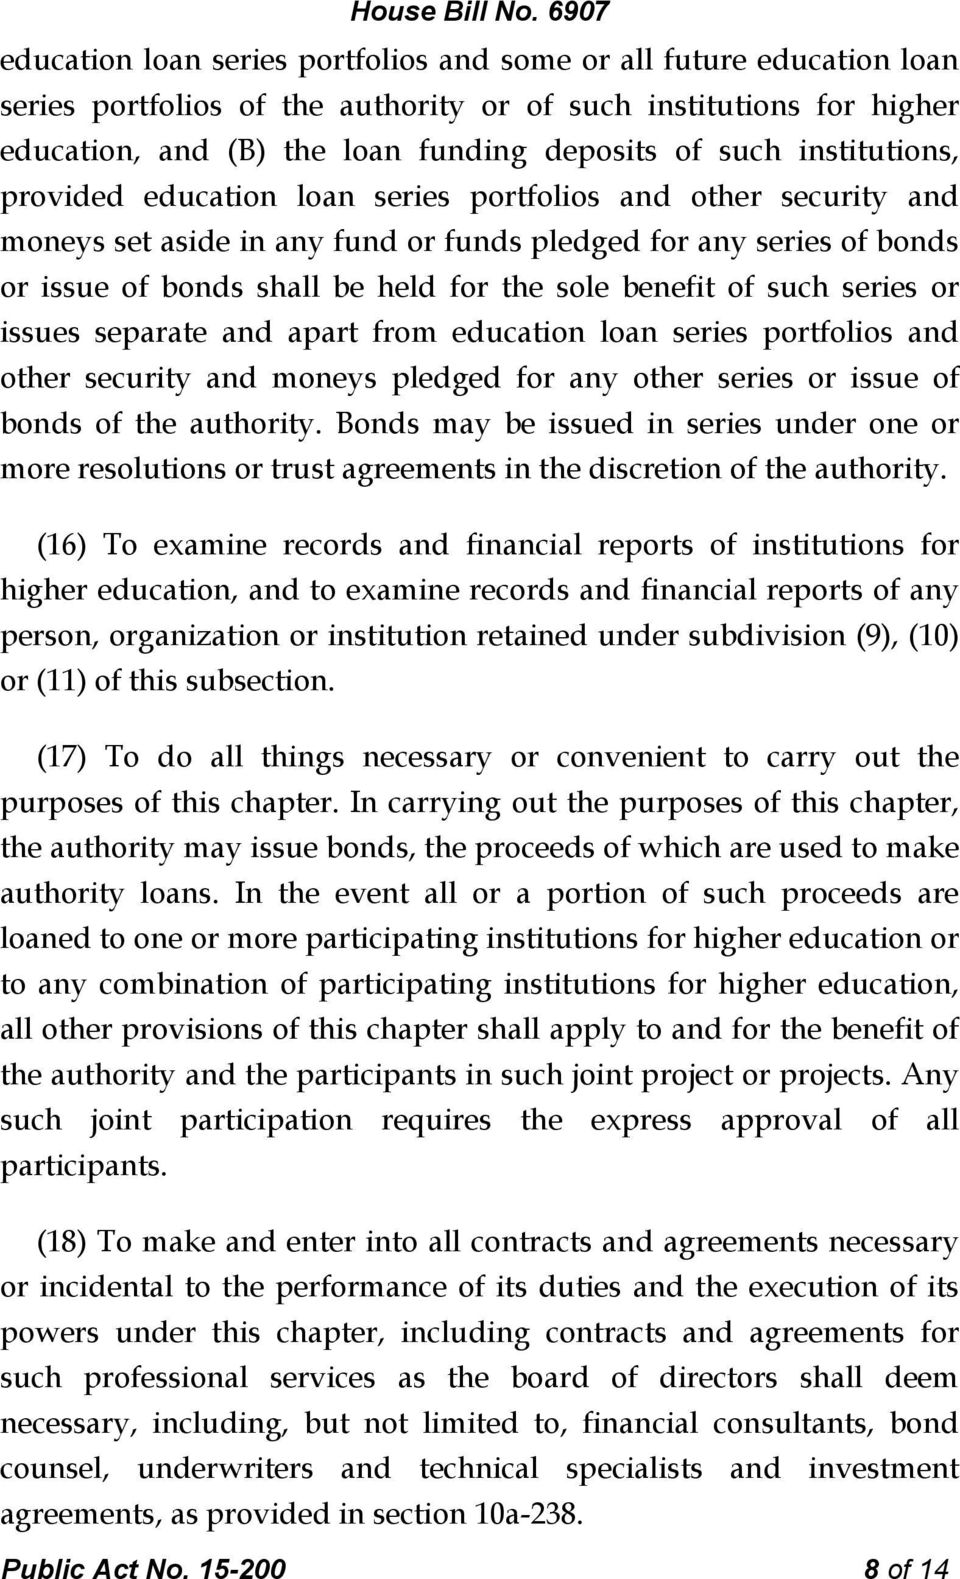 benefit of such series or issues separate and apart from education loan series portfolios and other security and moneys pledged for any other series or issue of bonds of the authority.